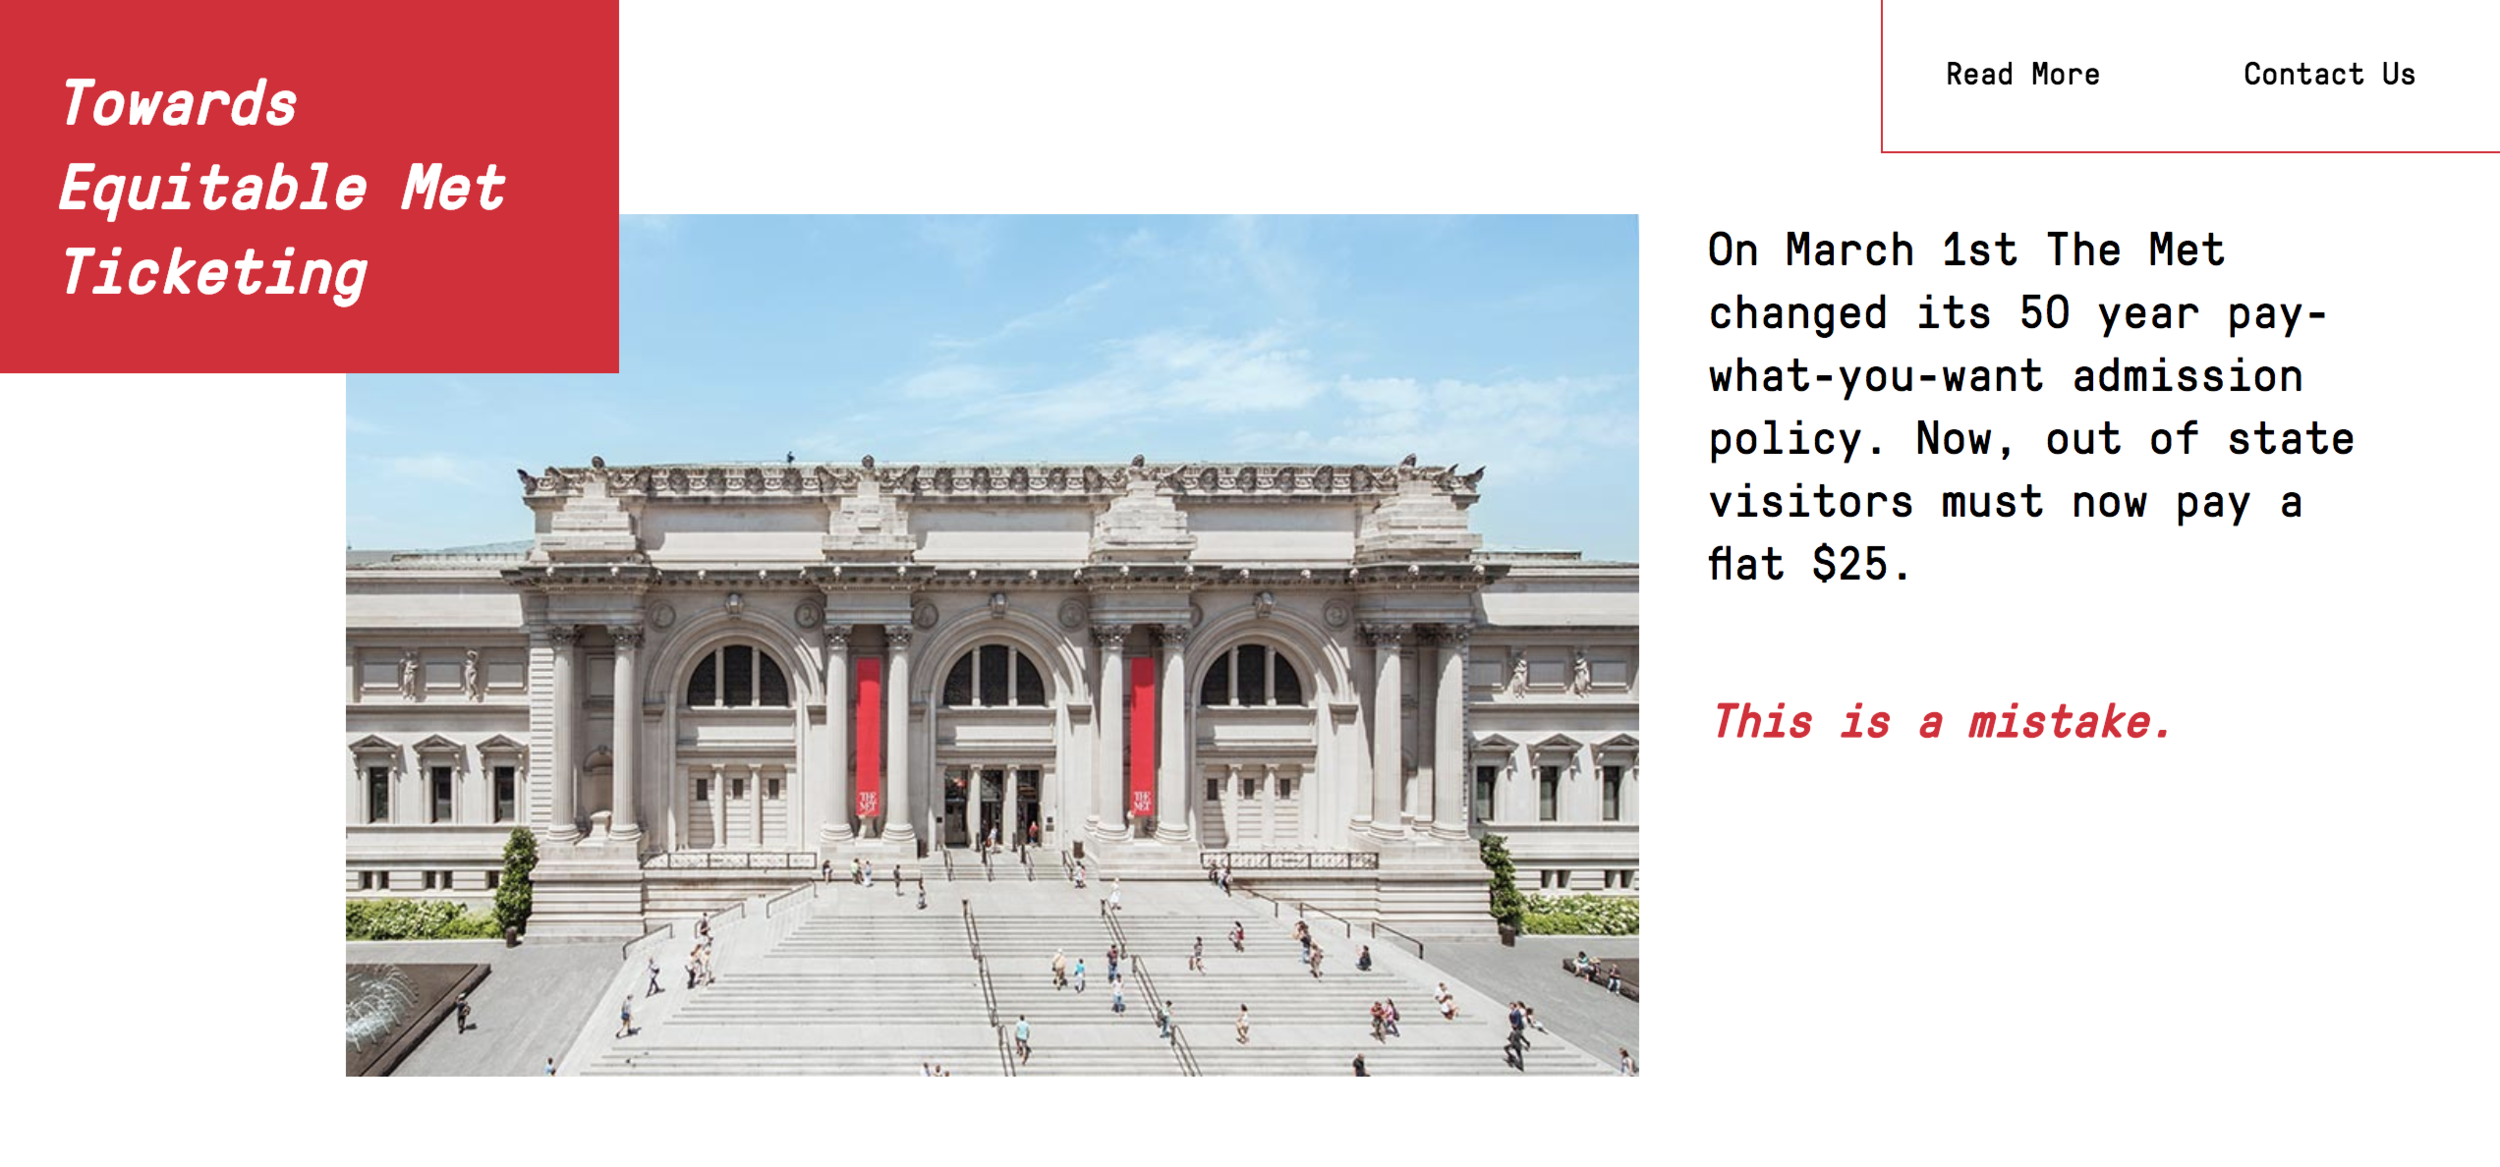 www.equitablemet.com, March 2018 - Check out a collaborative project we launched with Hello Velocity in response to the Metropolitan Museum of Art's admissions policy change. March 2018.